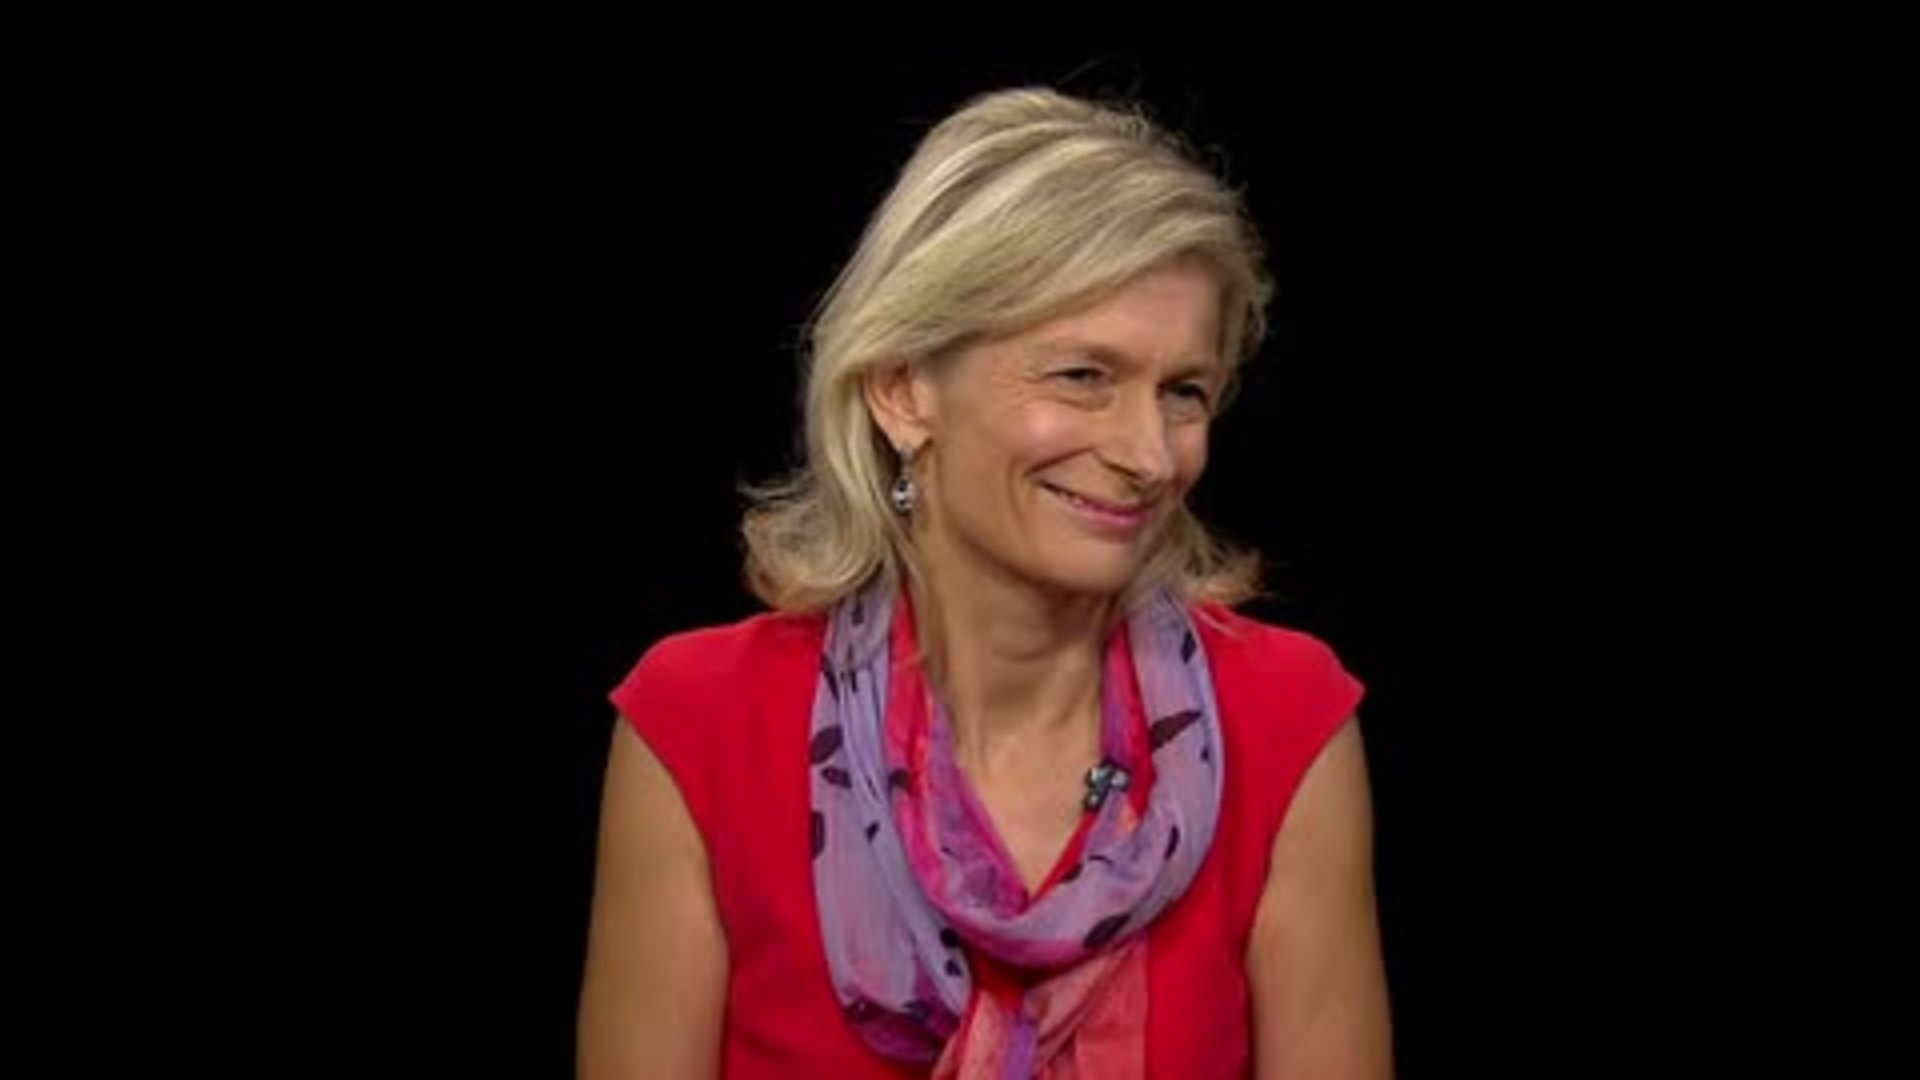 Zanny Minton Beddoes Charlie Rose